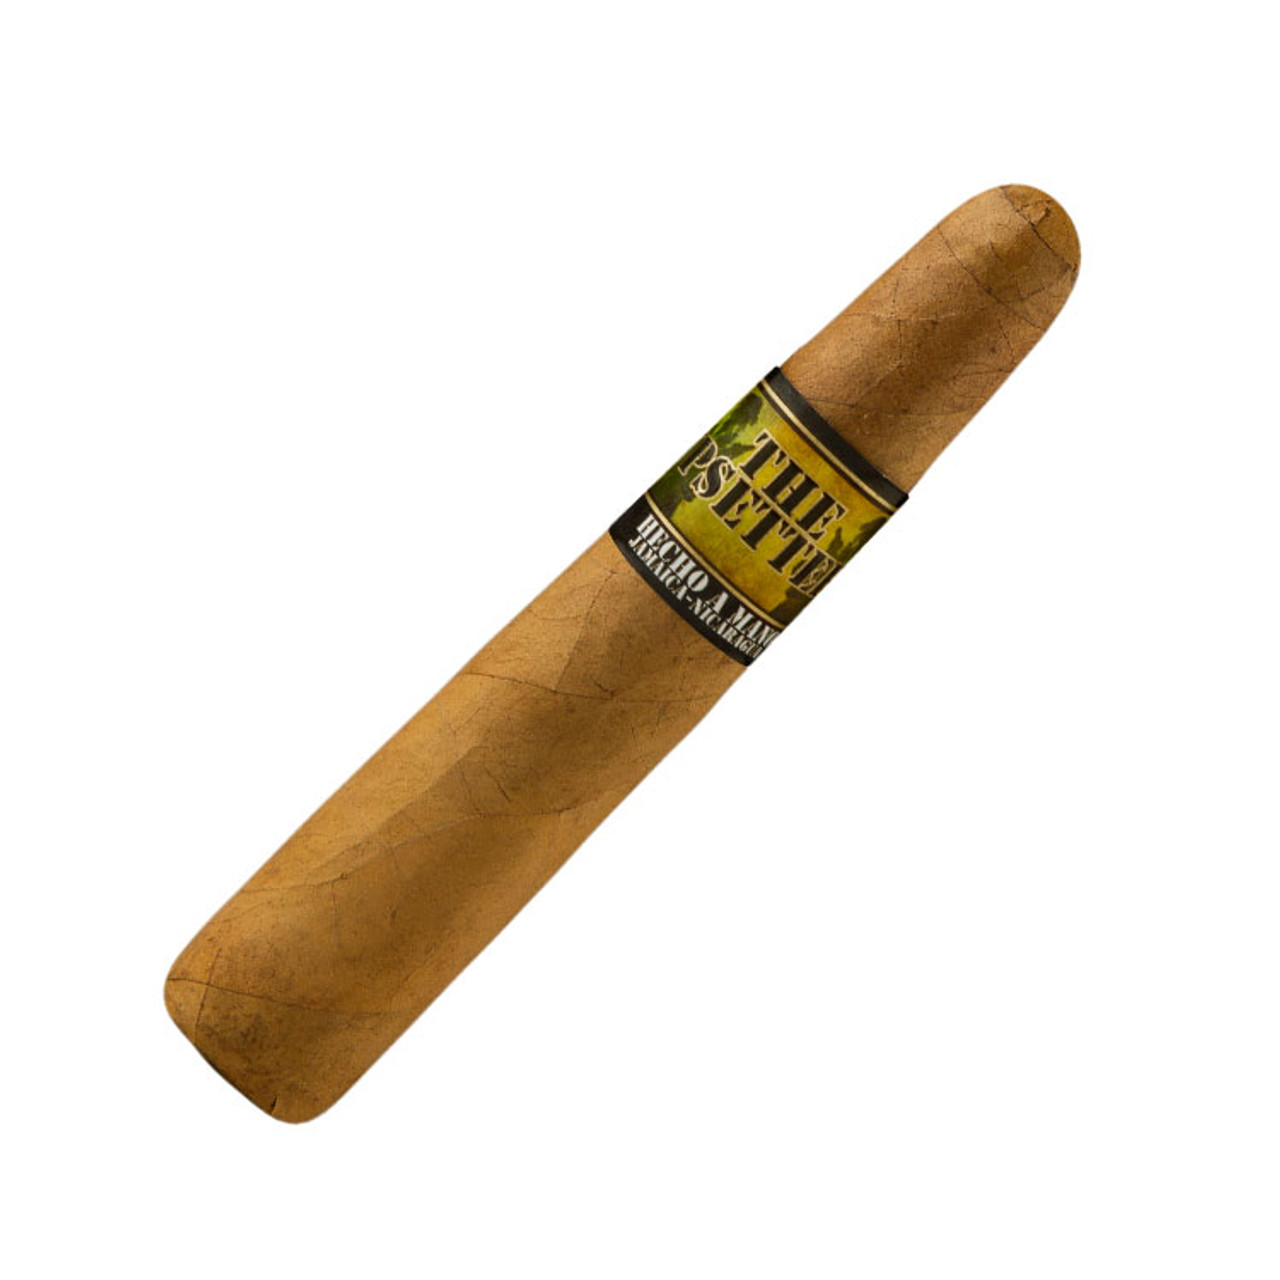 Foundation The Upsetters The Skipper Cigars - 4.5 x 54 (Box of 20)